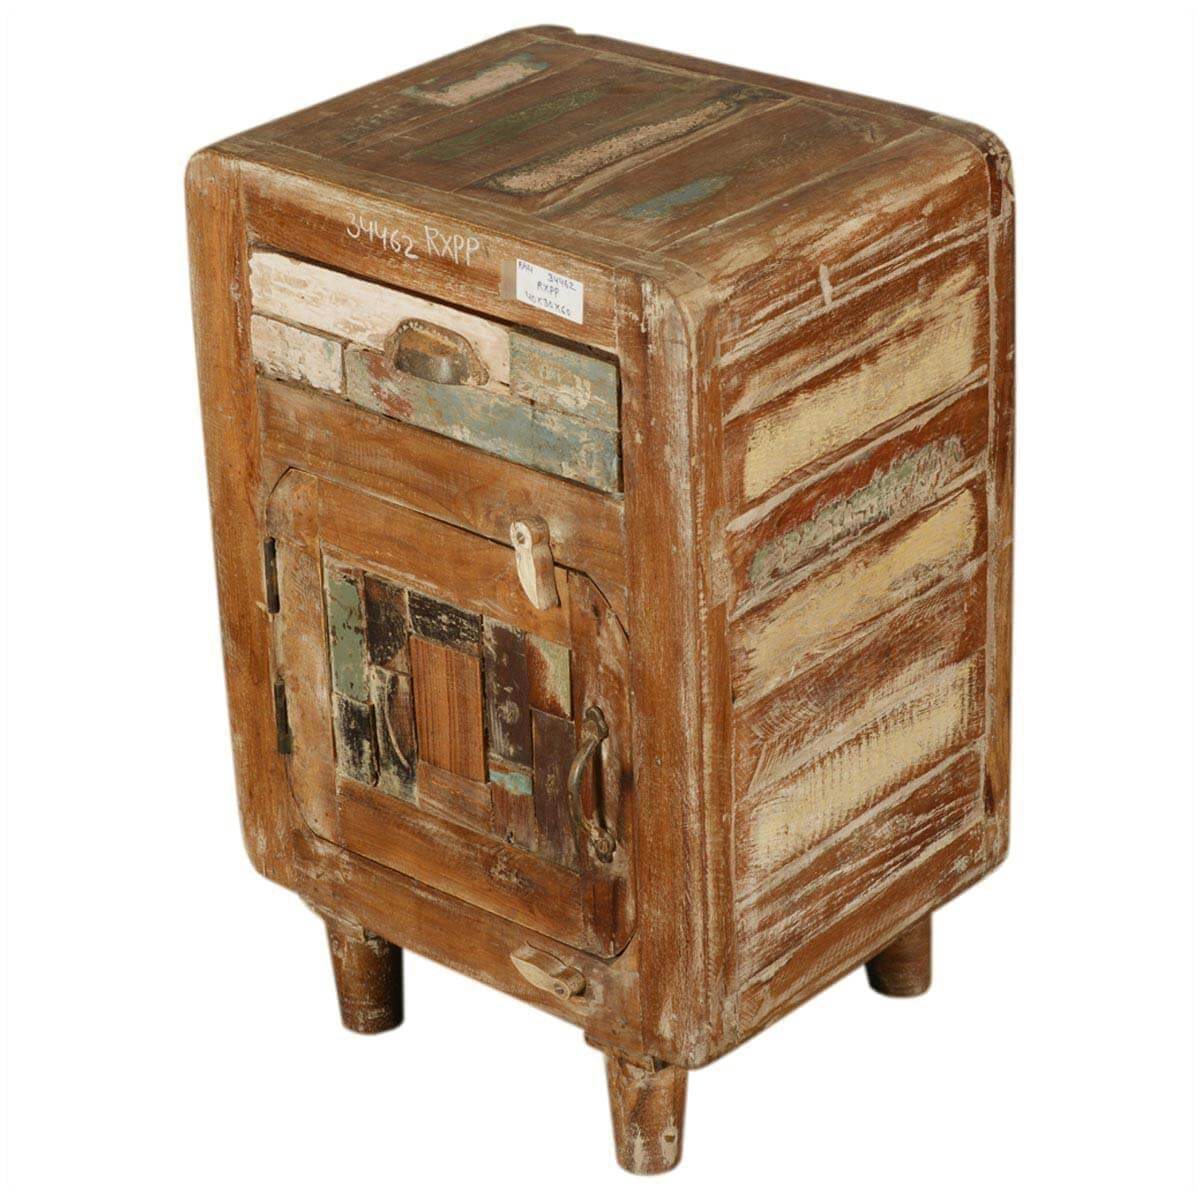 Appalachian Rustic Reclaimed Wood Retro 1 Drawer Nightstand